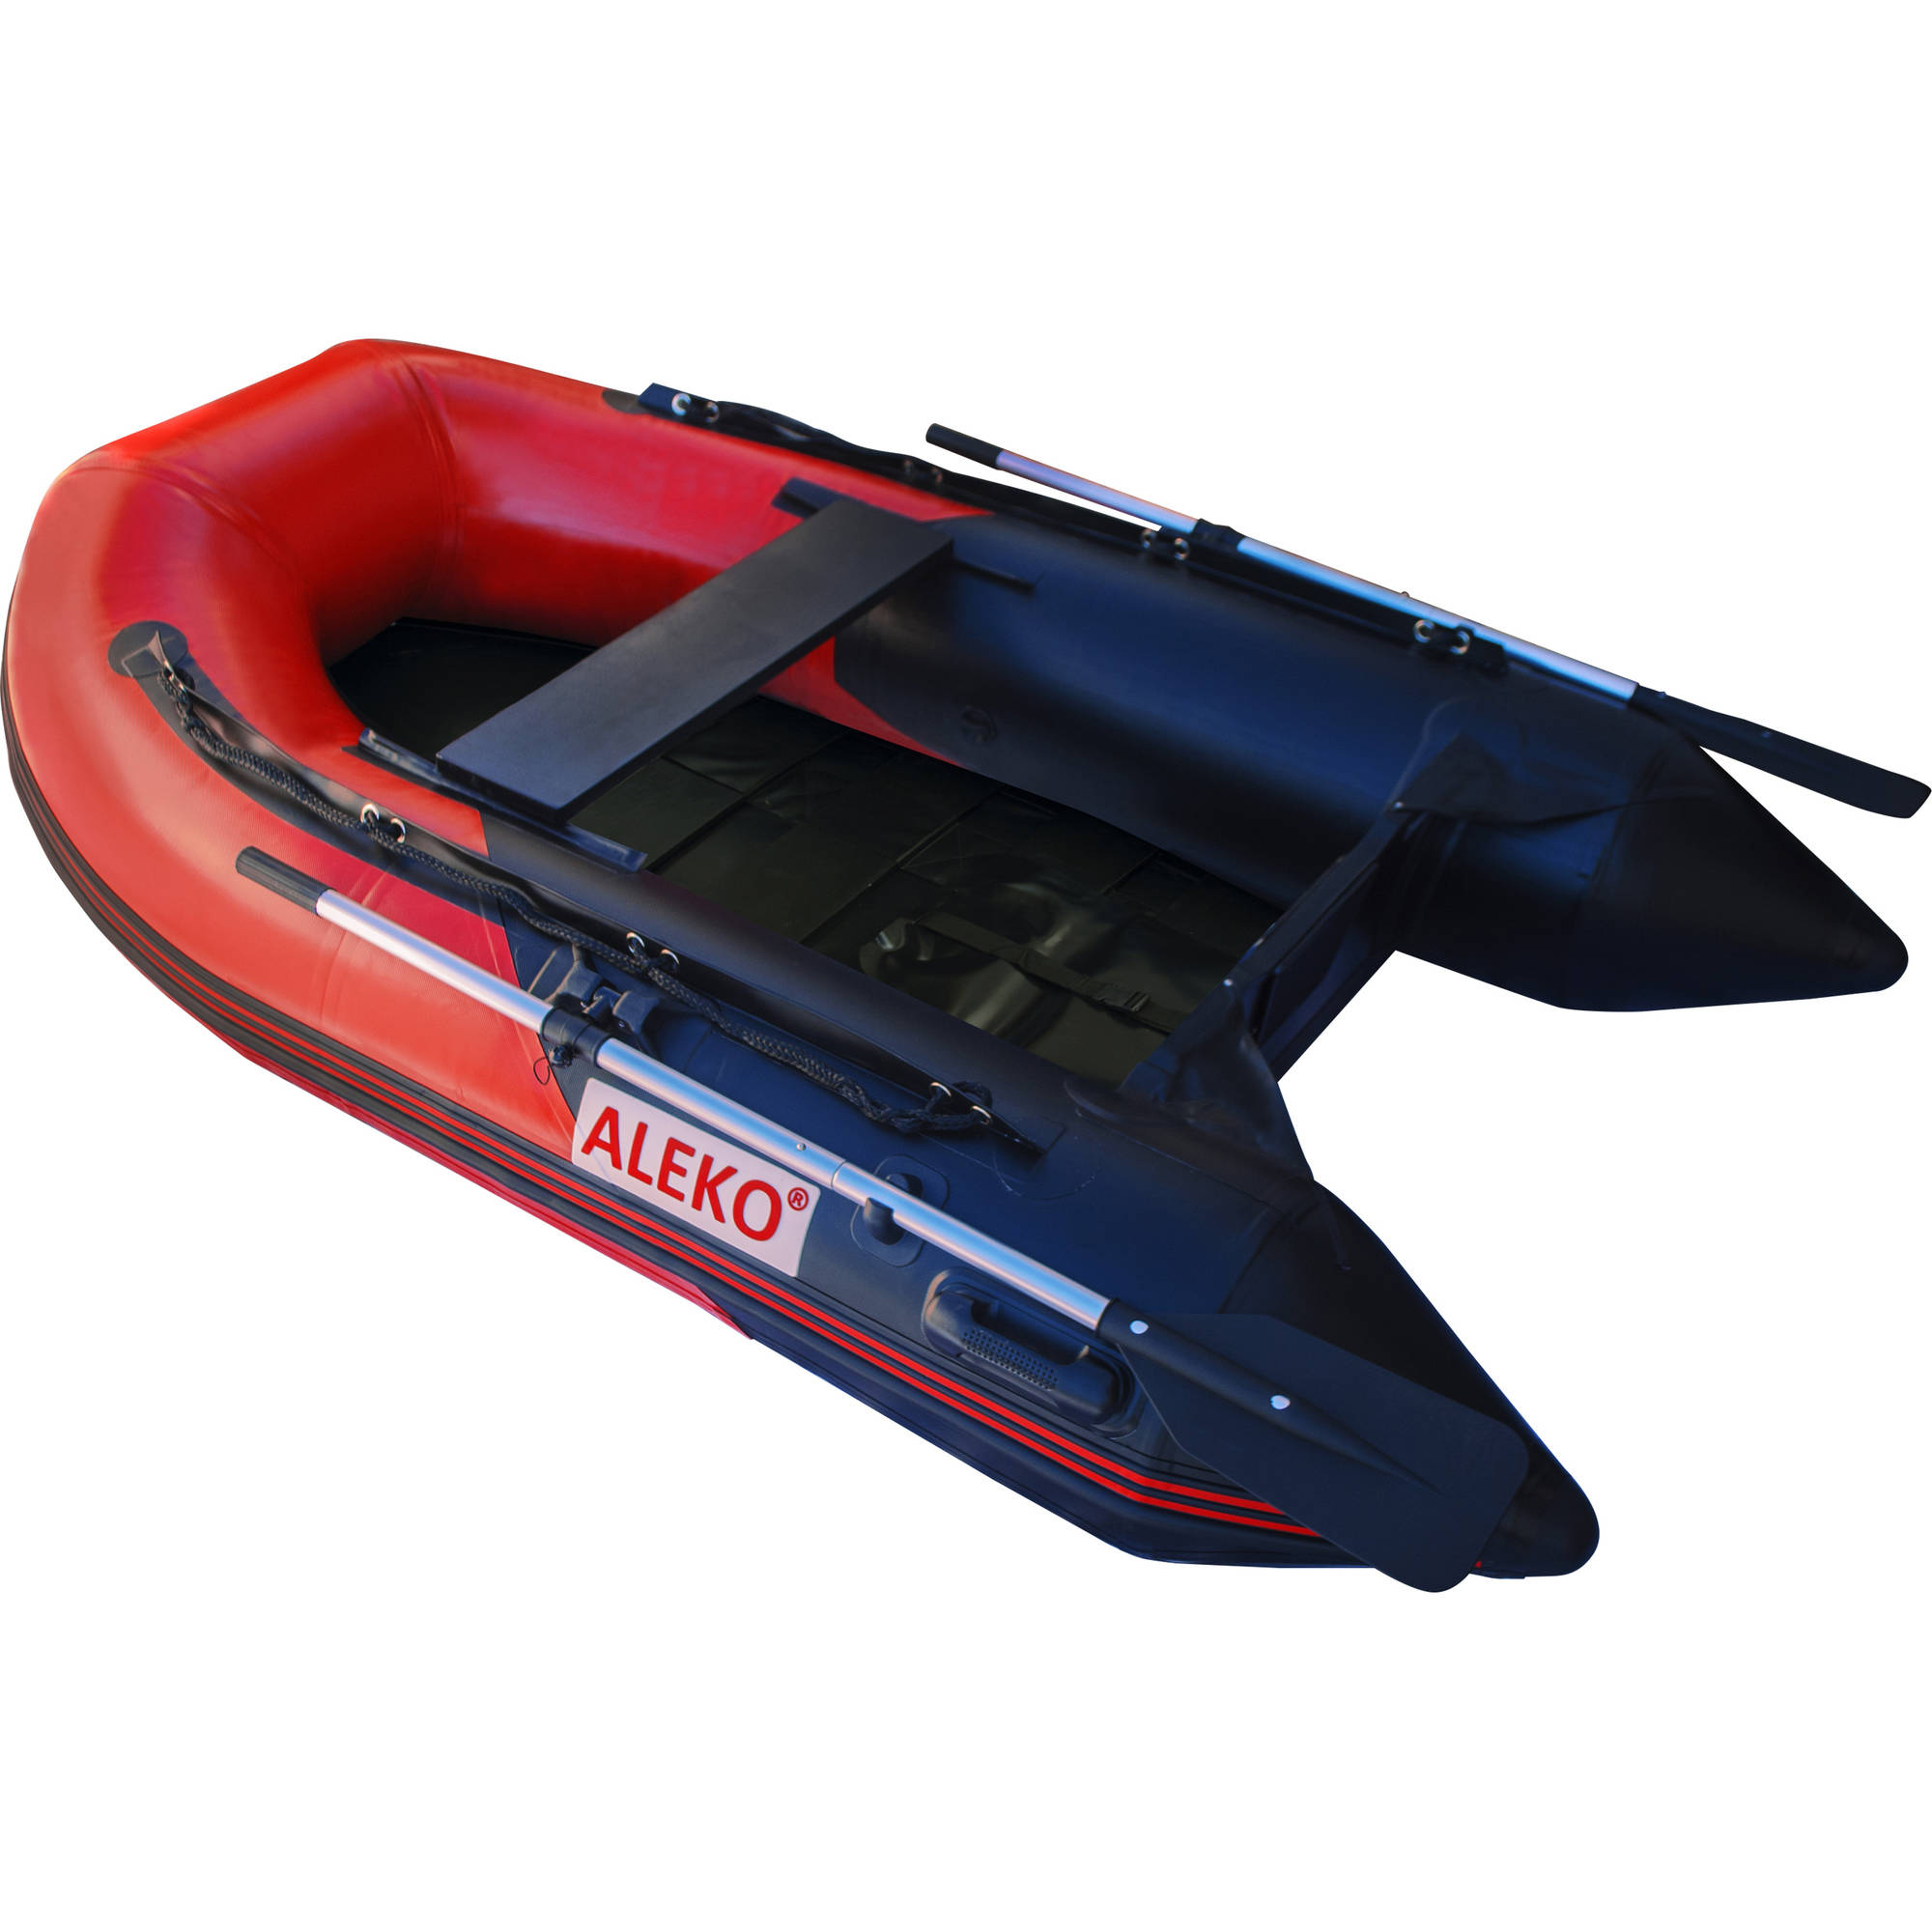 ALEKO Inflatable Boat - Pre-Installed Slide Floor - 3-Person - 8.4 Feet - Red and Black